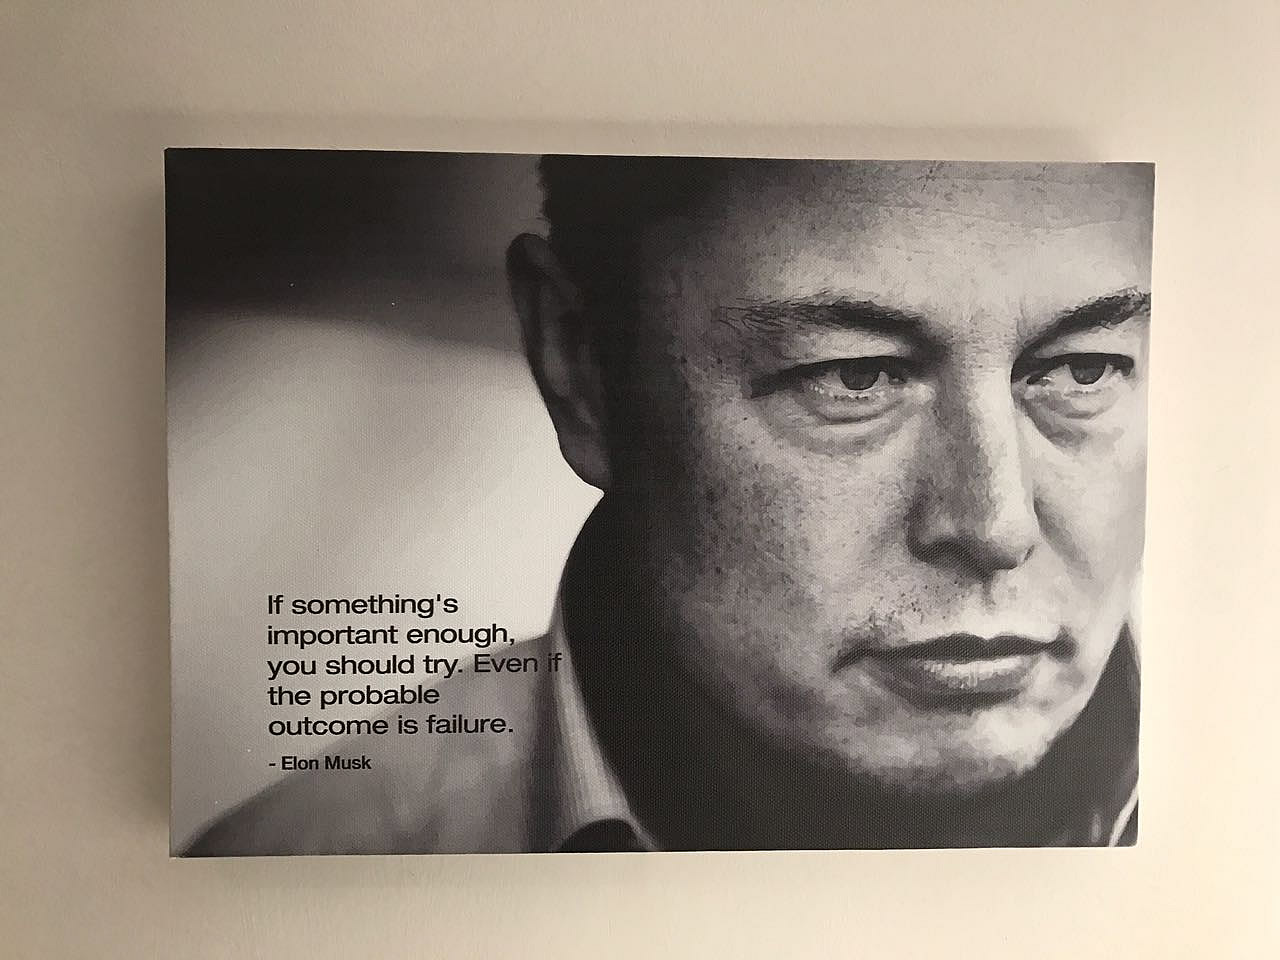 This is another artist canvas example by Vye Graphics, with an inspirational quote from Elon Musk.